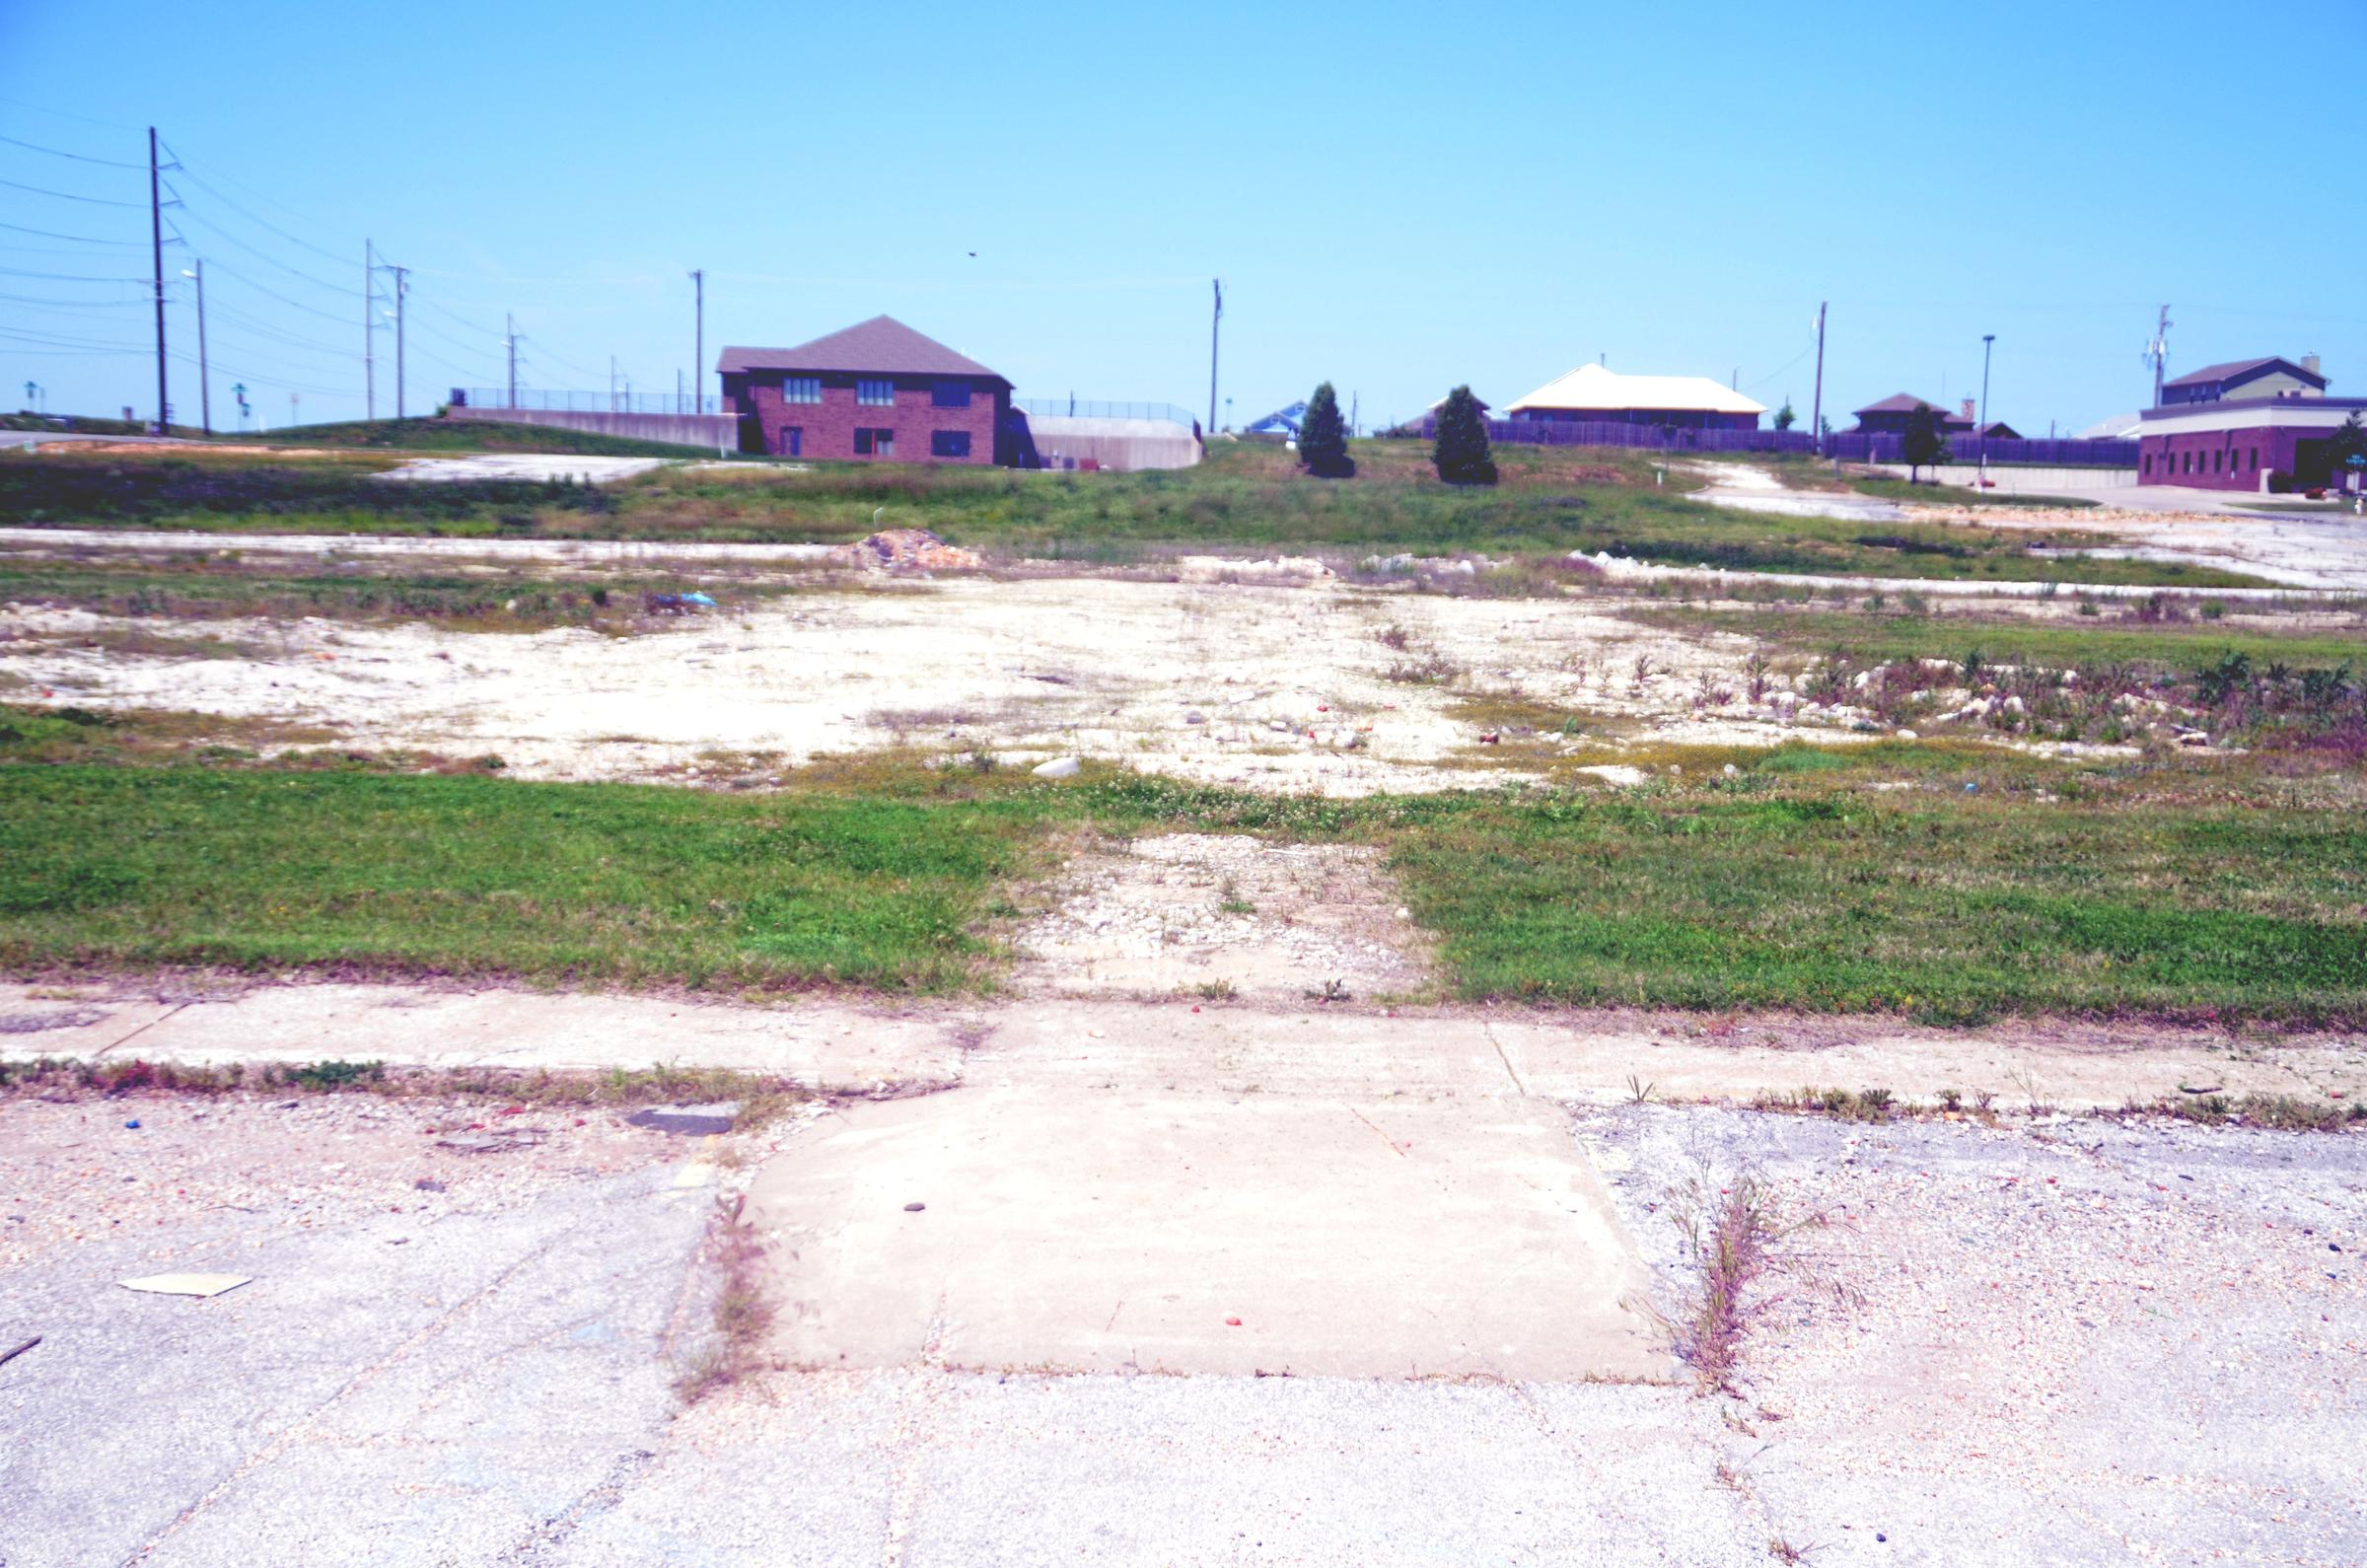 Going Back to Joplin to Move Forward